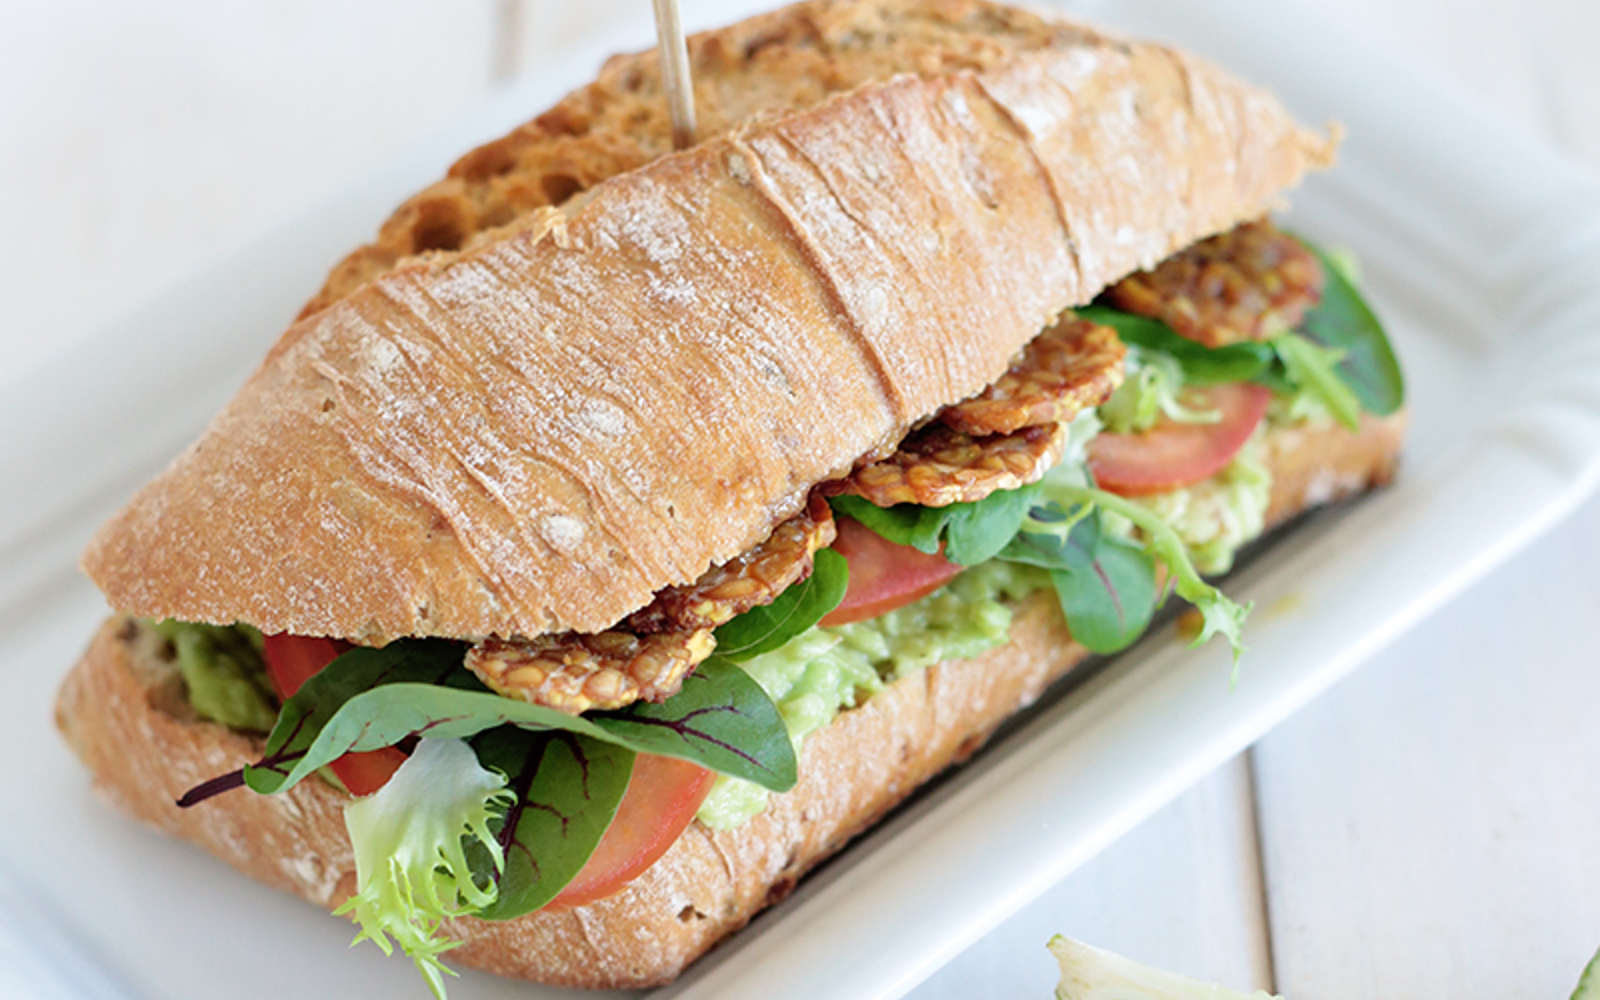 Avocado and Maple-Glazed Tempeh Sandwich